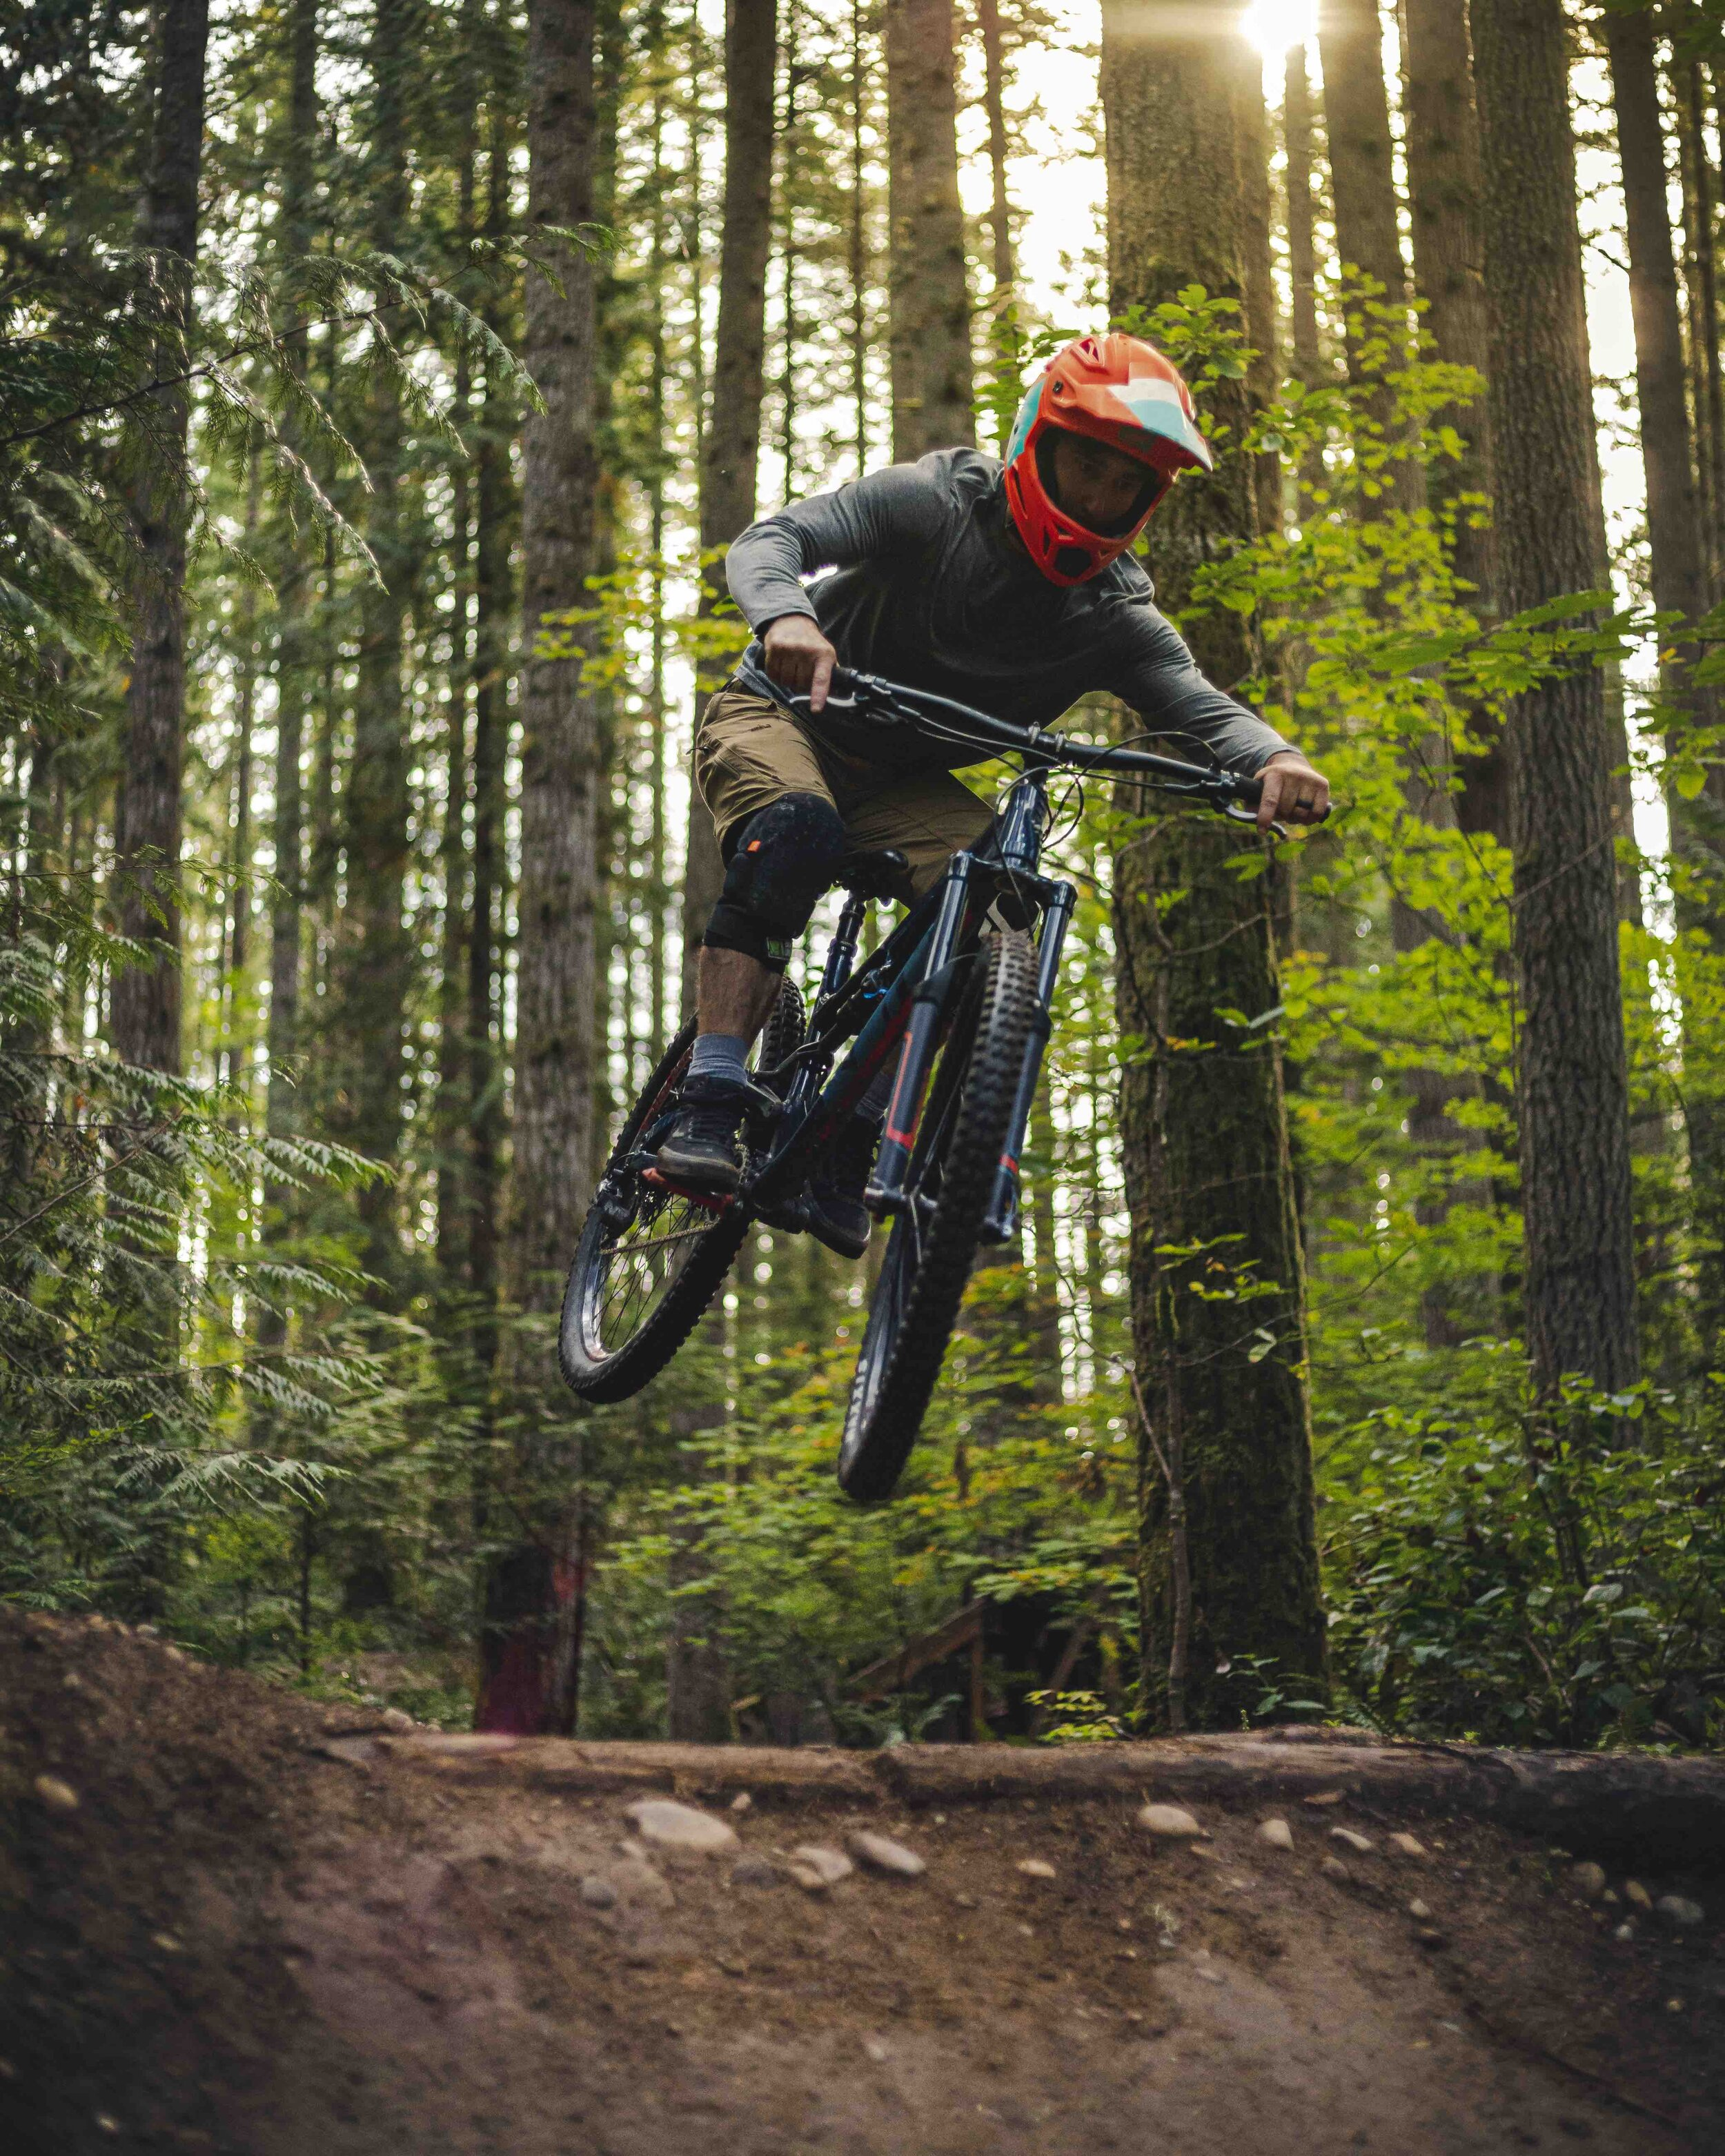 Mountain_Bike_Dirt_Jump_Action_Shot_Mid_Air_with_Forest_Background.jpeg